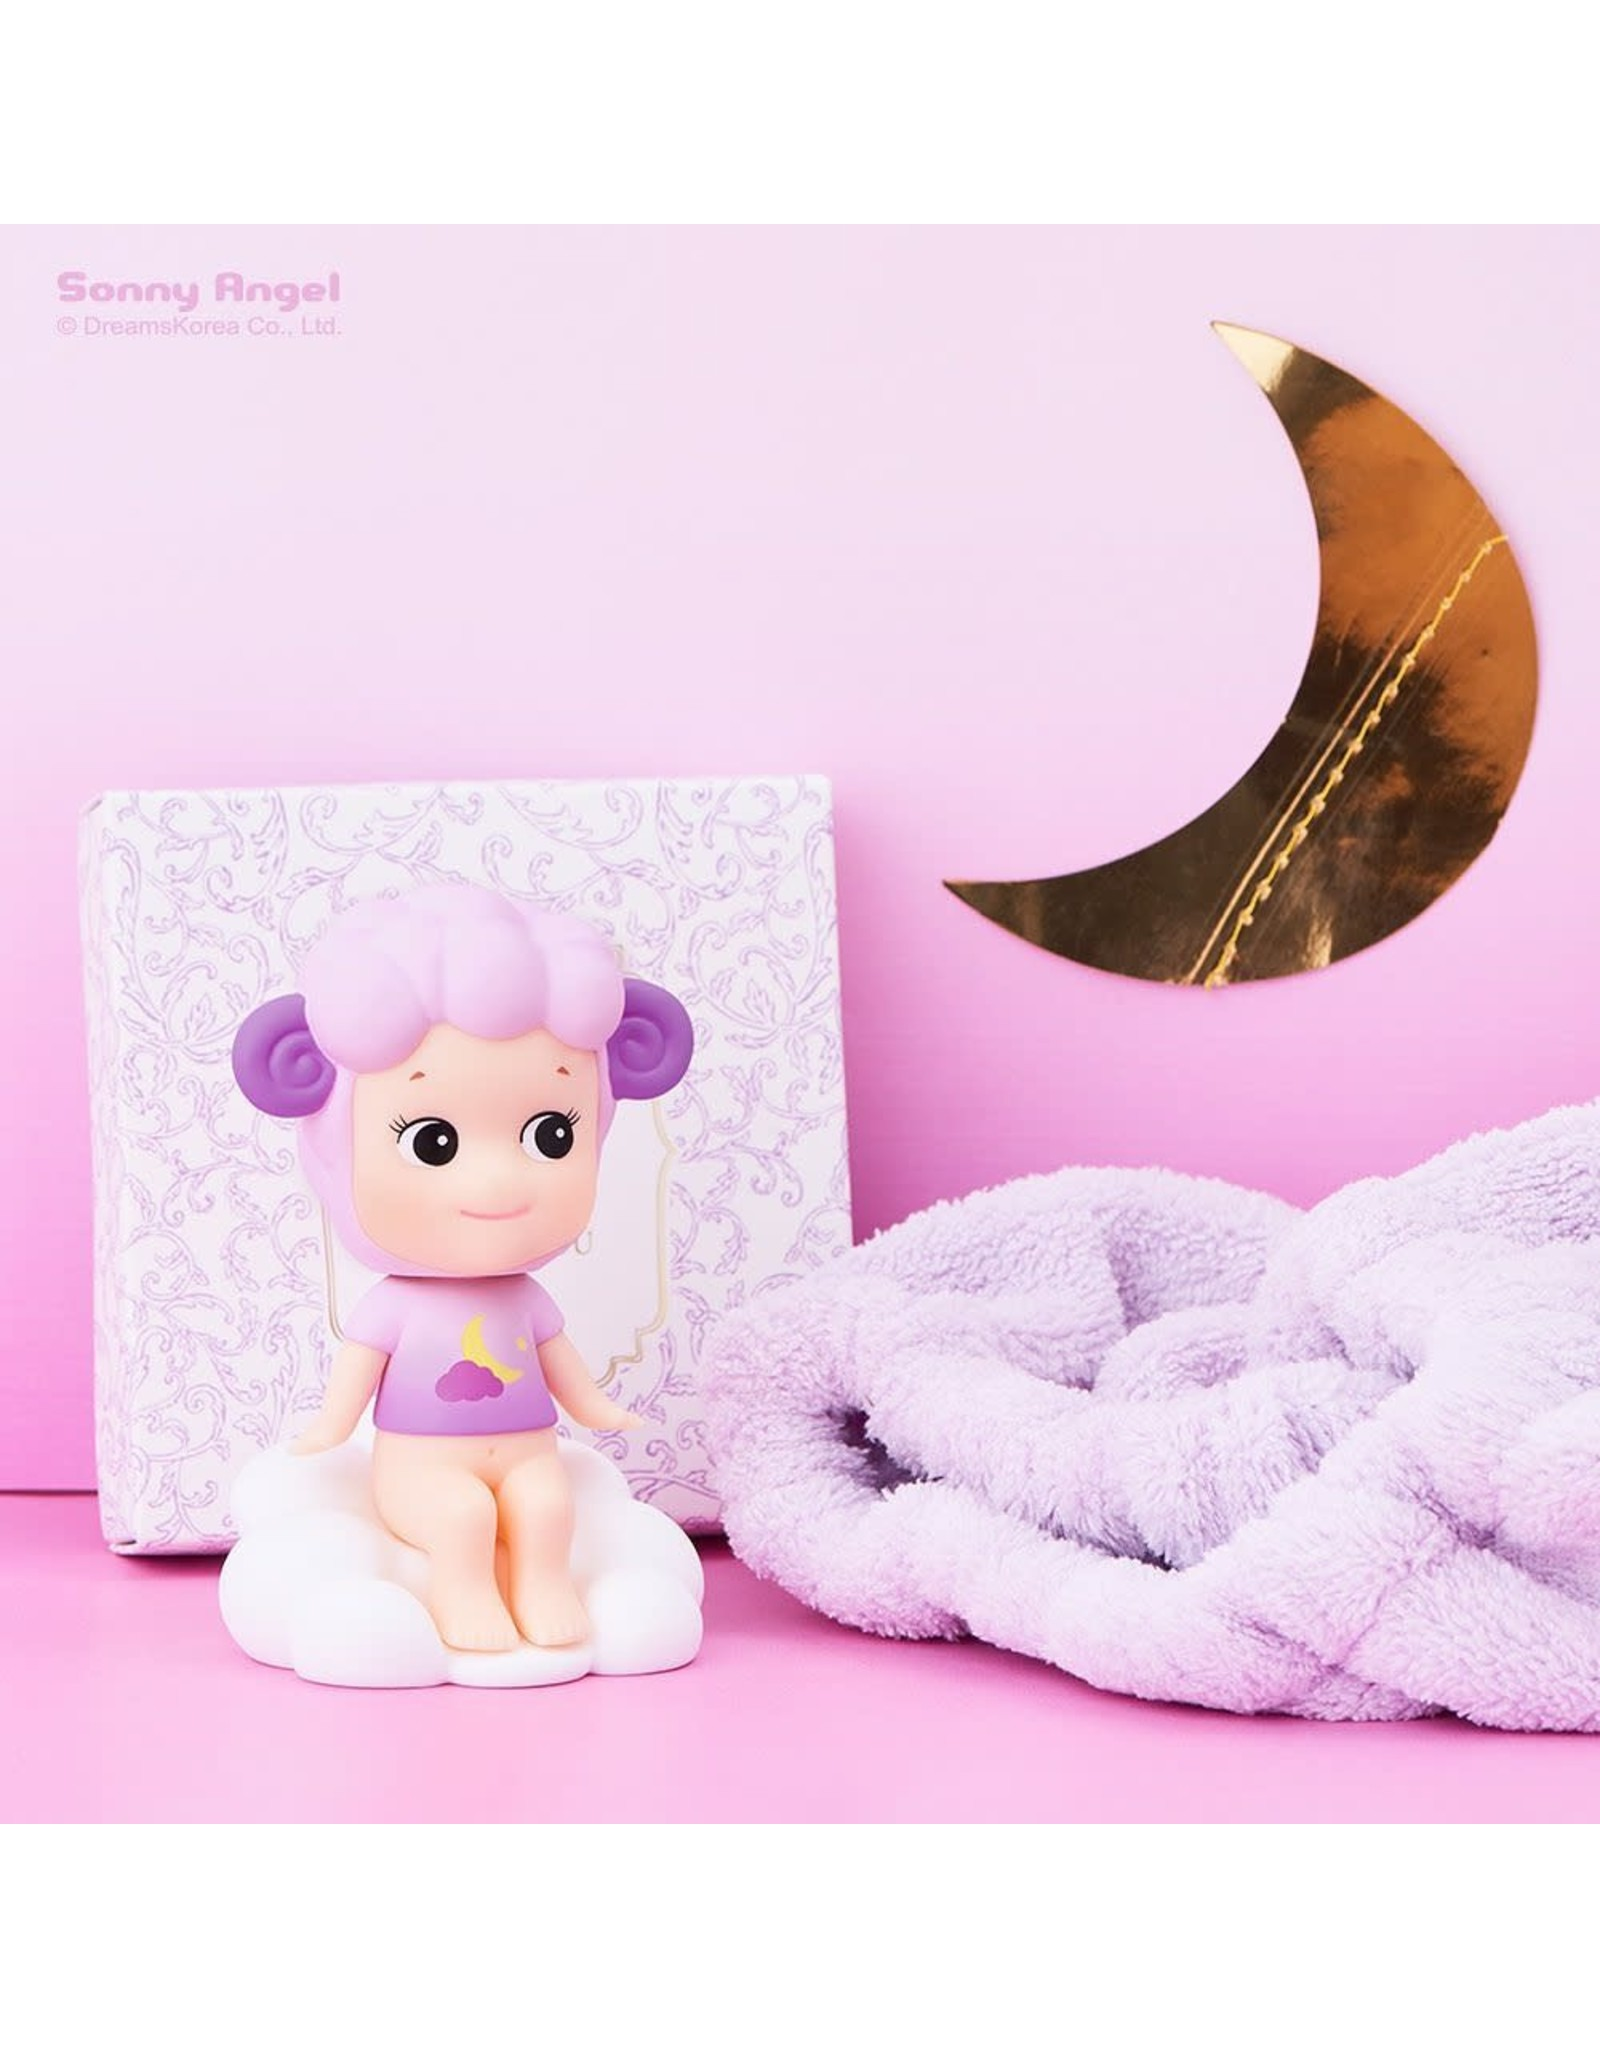 Sonny Angel Bobbing Head - Sheep